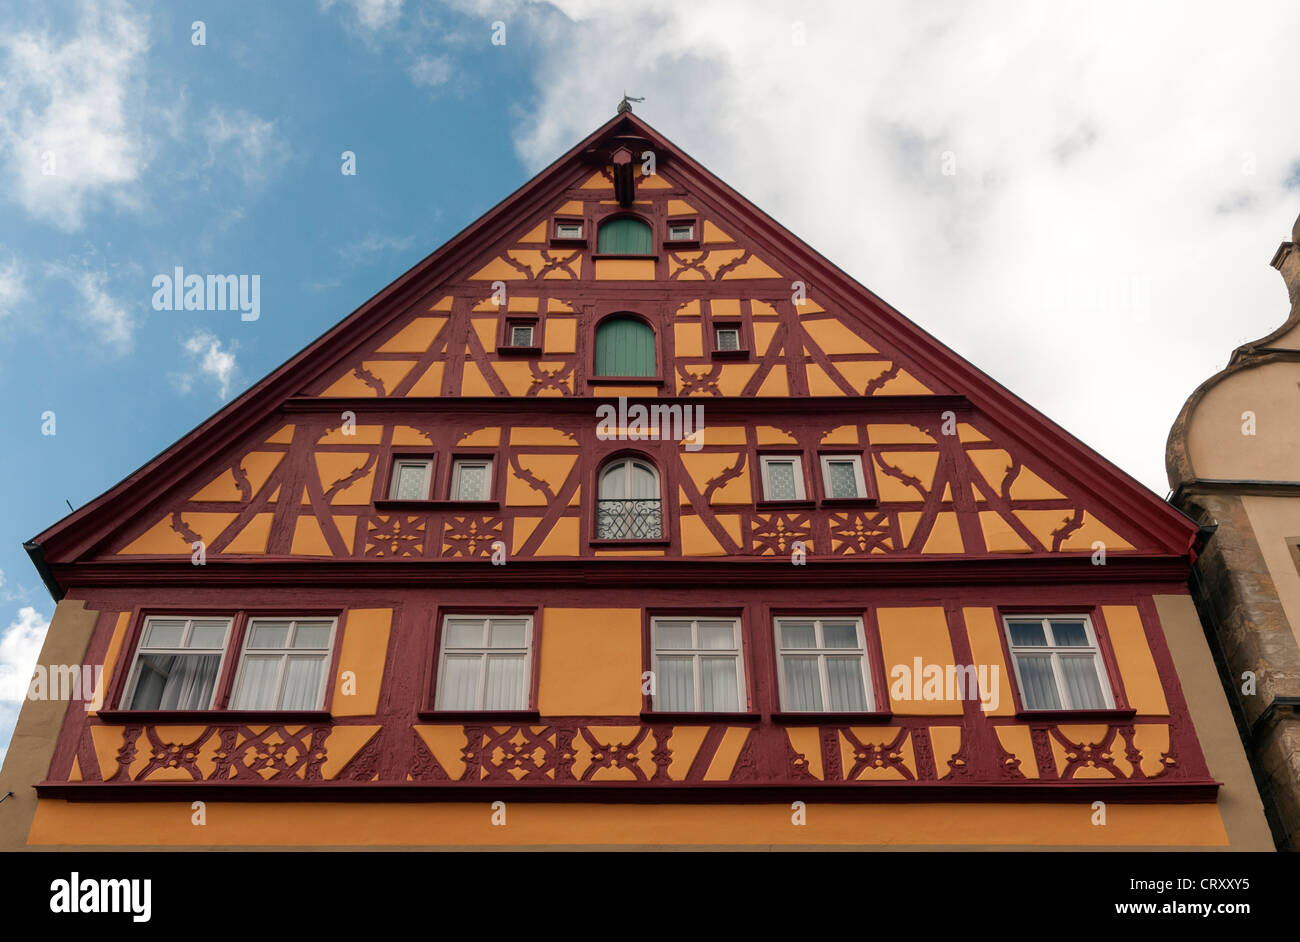 Gable of House with Timber framing (half-timbered) in Rothenburg ob der Tauber, Germany - Stock Image